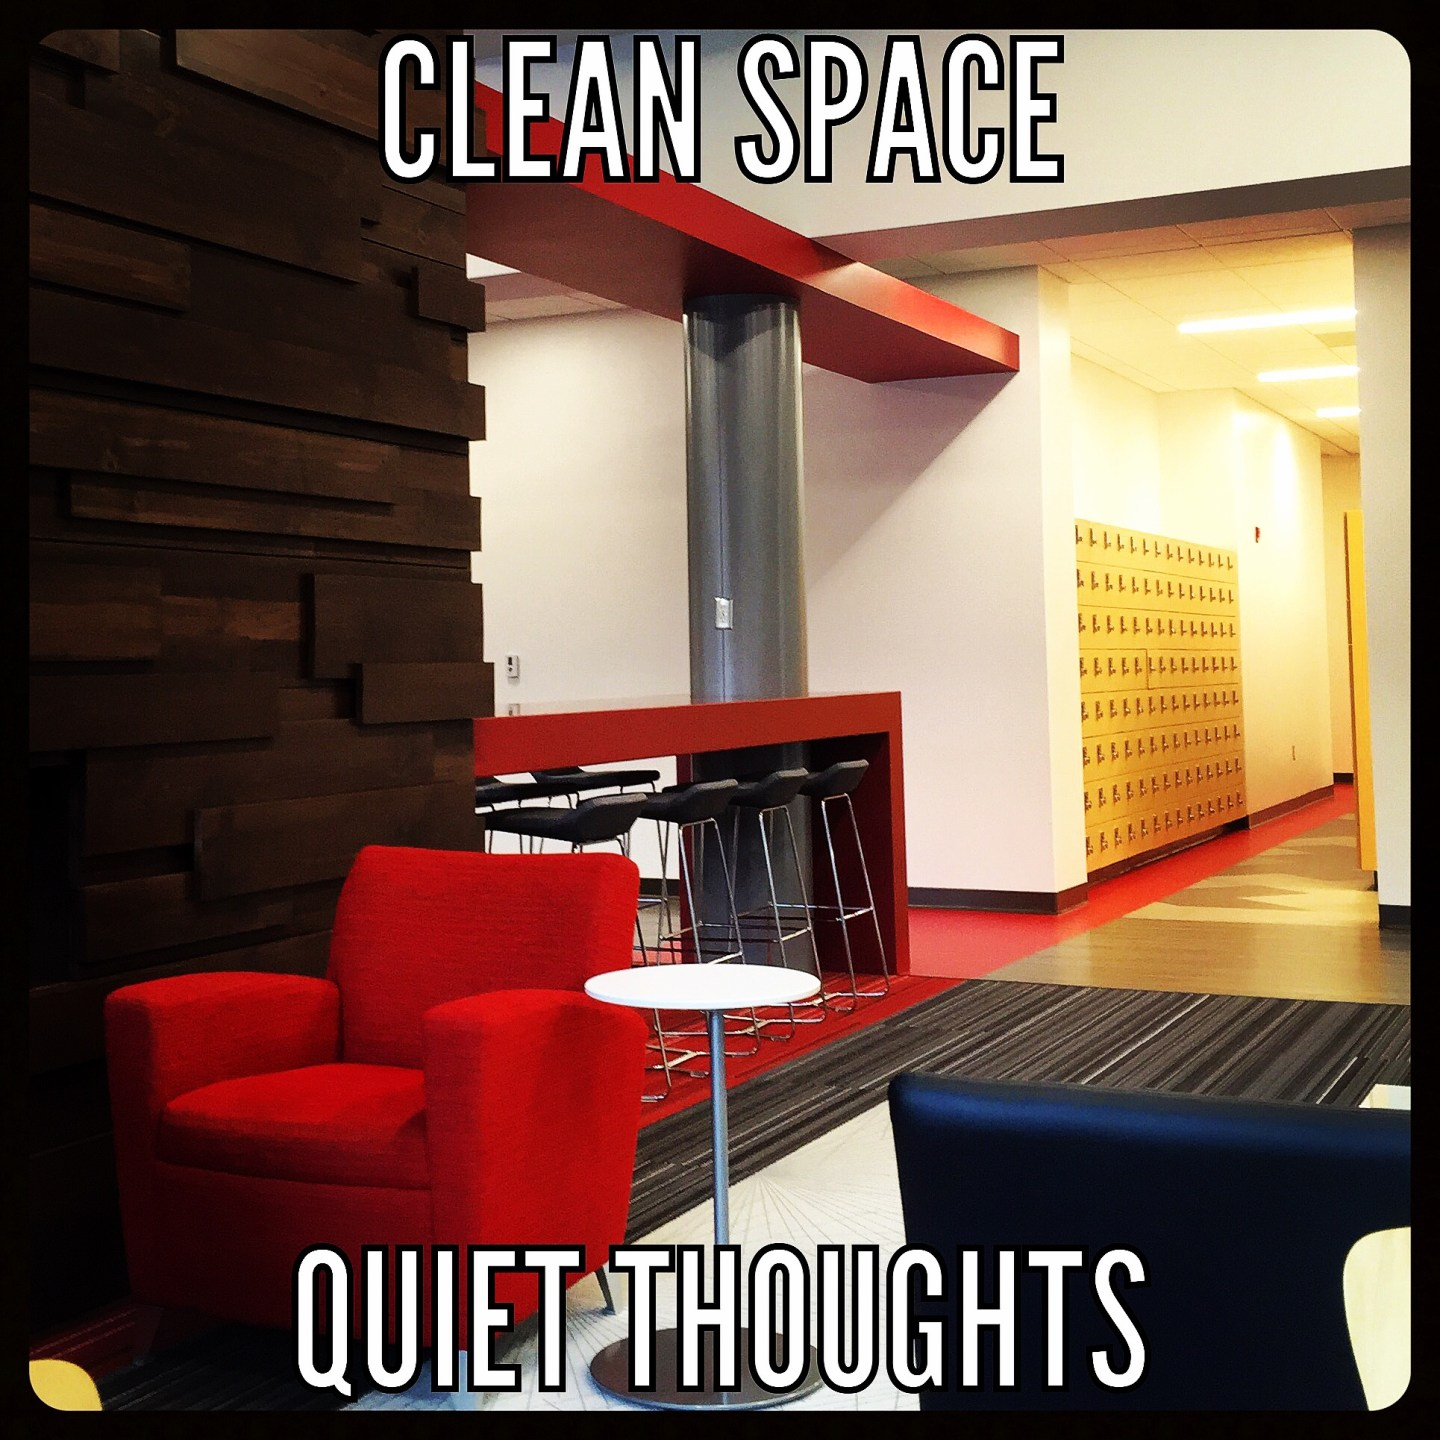 clean space, quiet thoughts